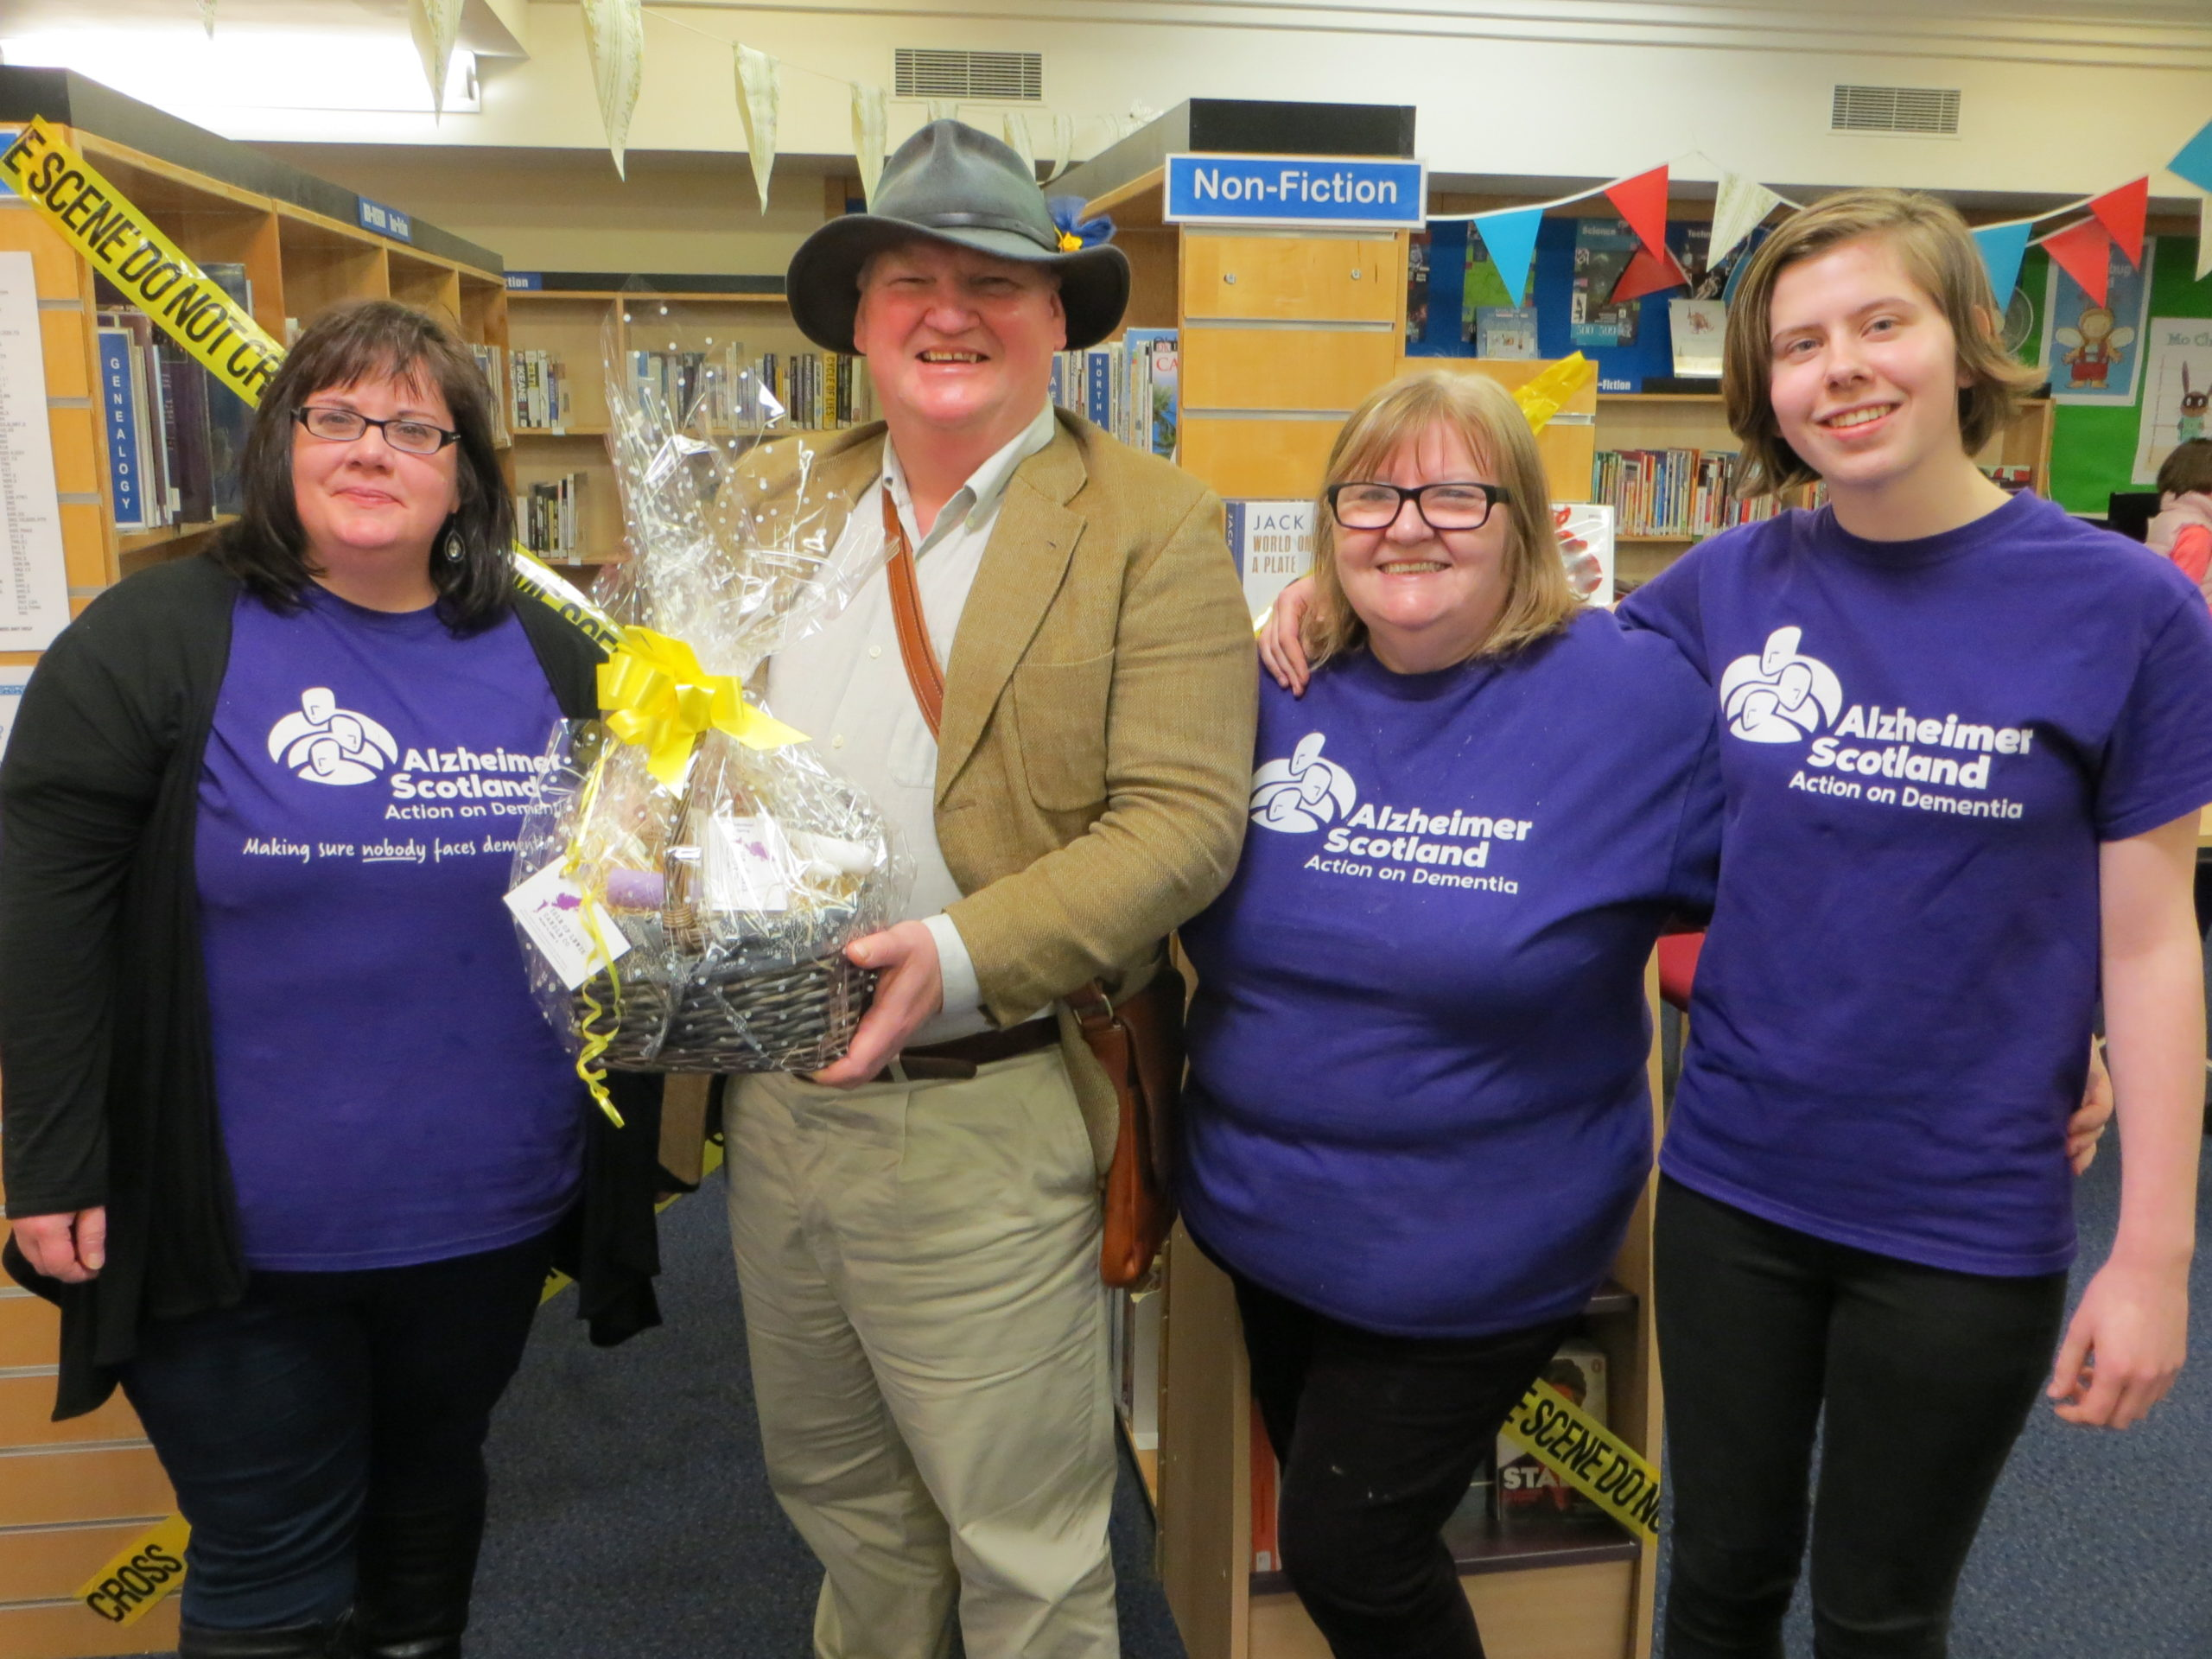 four people smiling in a library, holding up a prize and wearing Alzheimers Scotland tee-shirts.